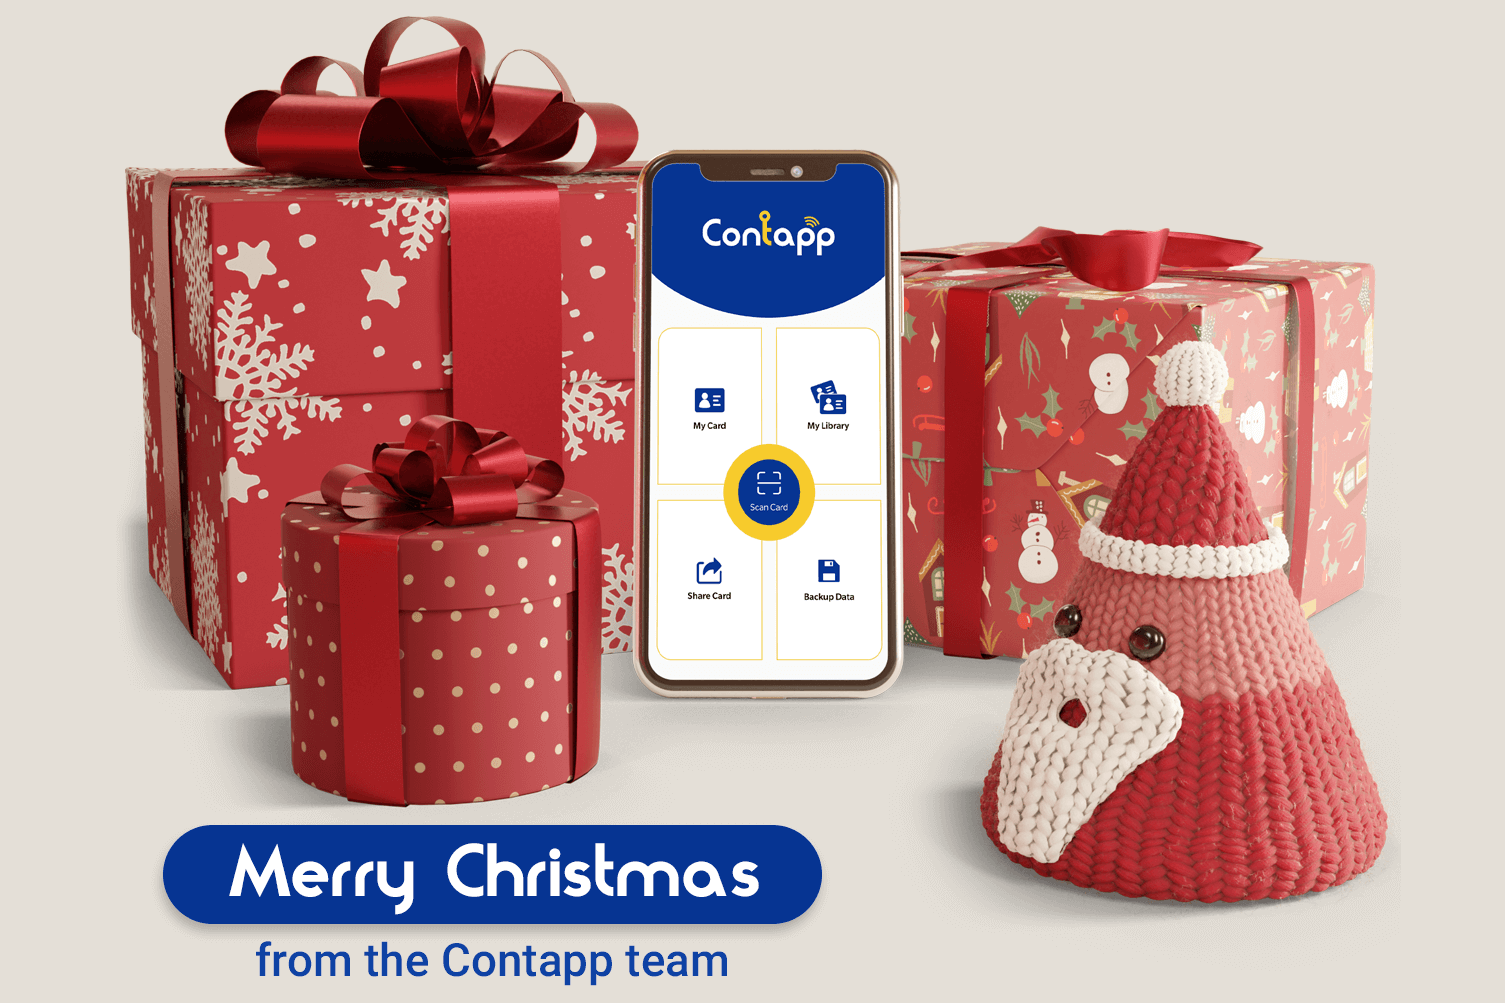 Merry Christmas from Contapp